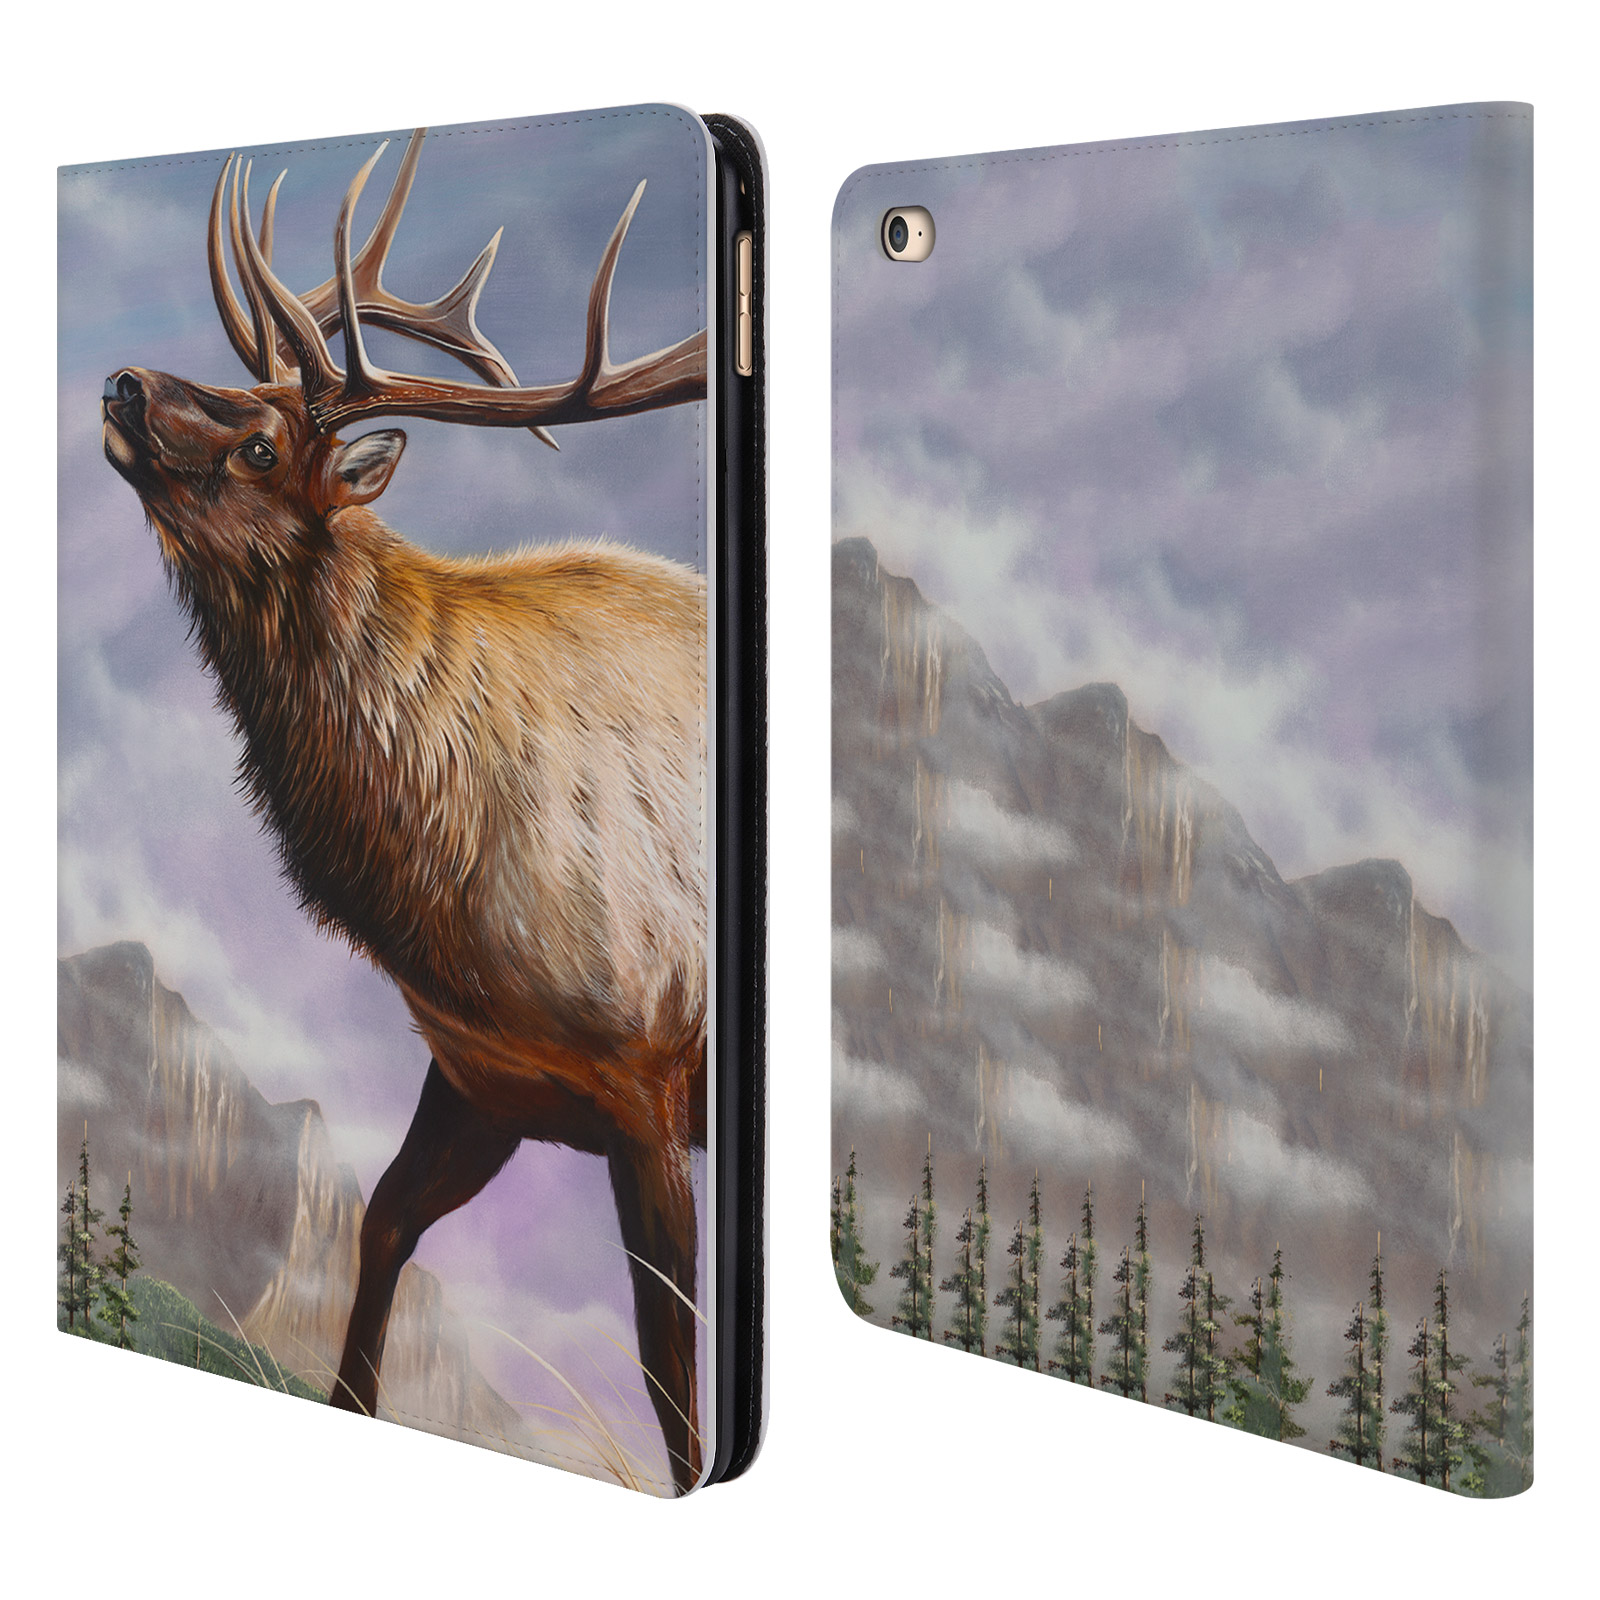 OFFICIAL-GENO-PEOPLES-ART-LIFE-LEATHER-BOOK-WALLET-CASE-COVER-FOR-APPLE-iPAD